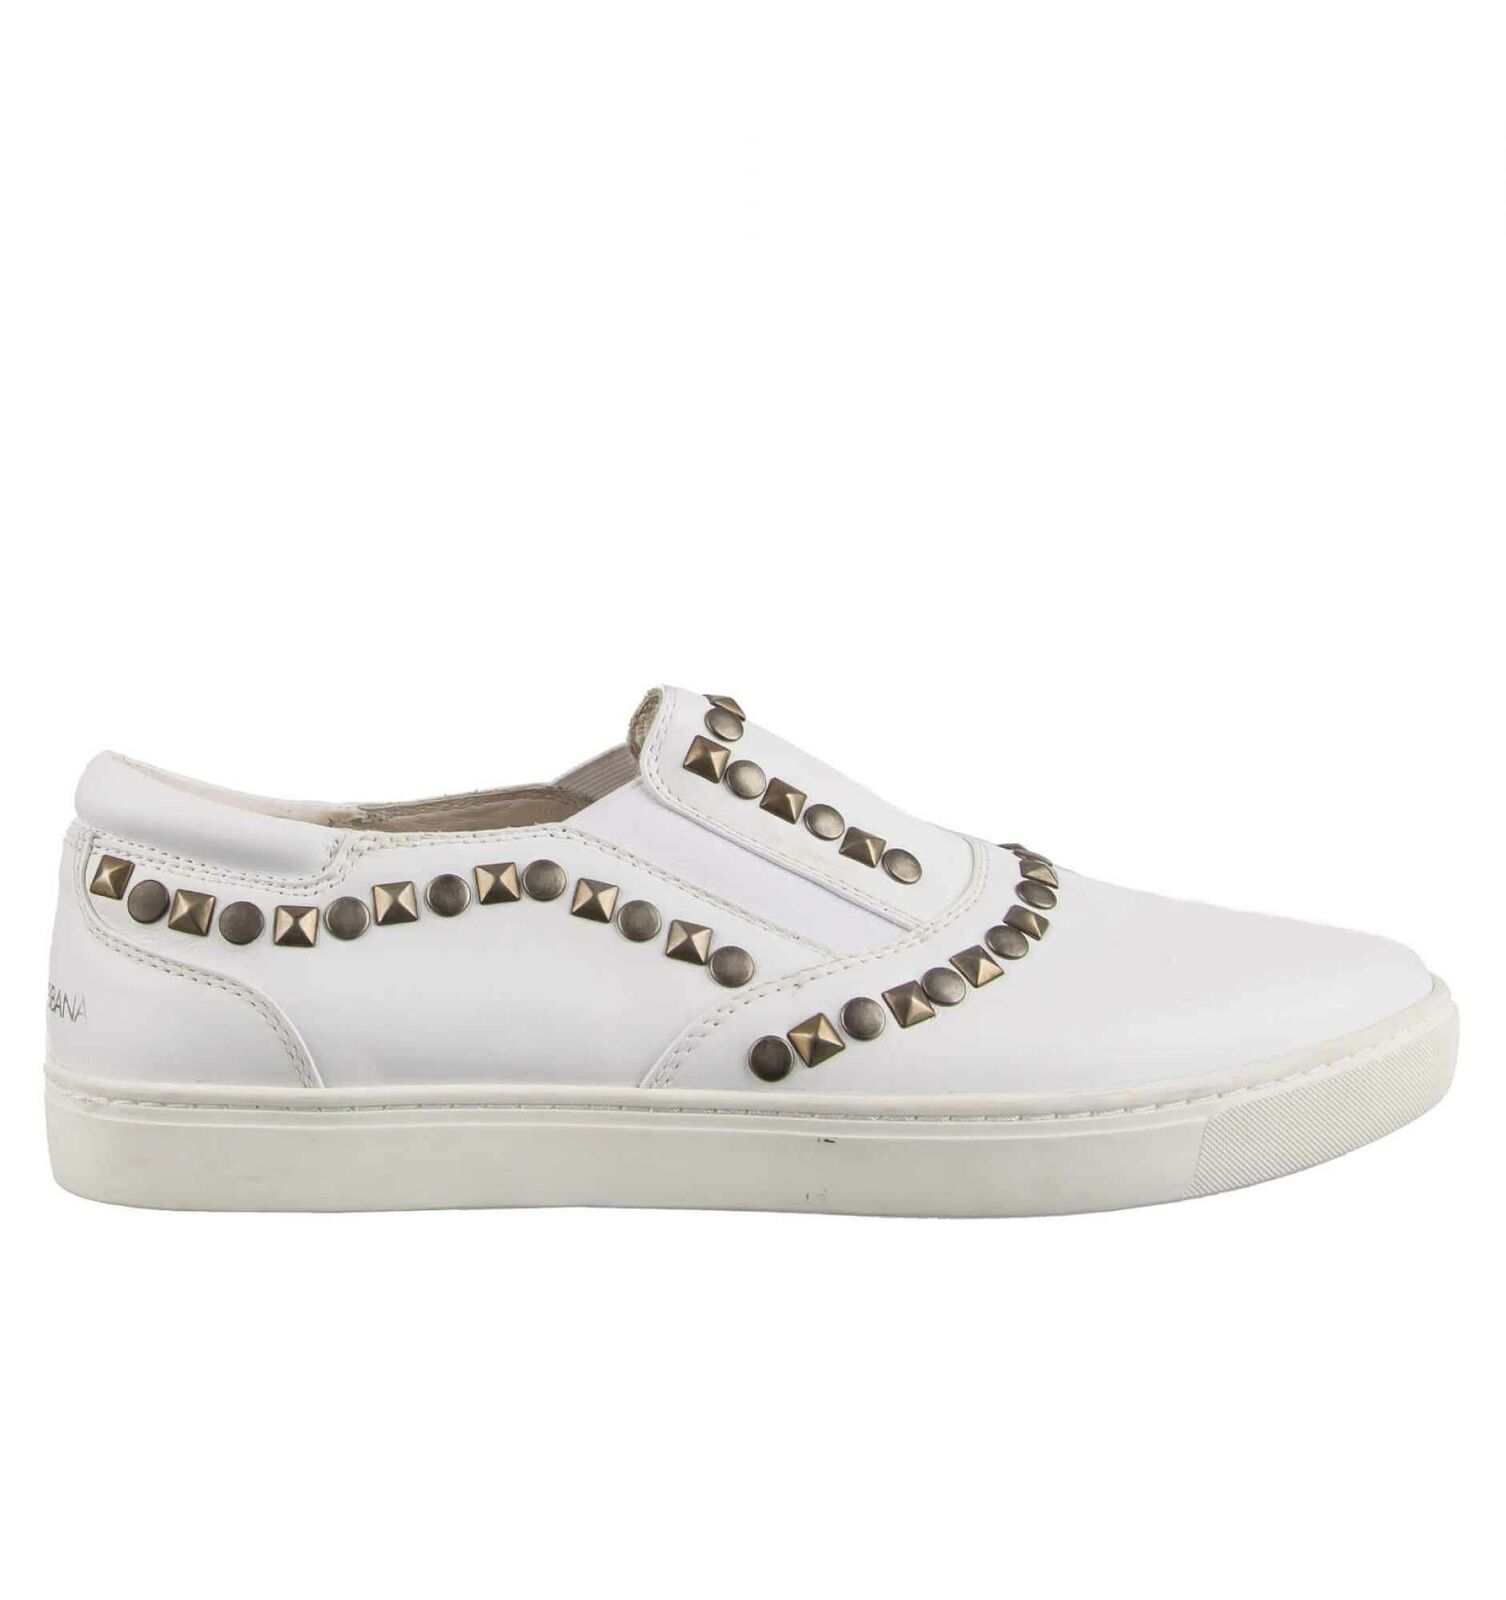 Dolce & gabbana slip-on baskets chaussures / londres rivets logo blanc 08562